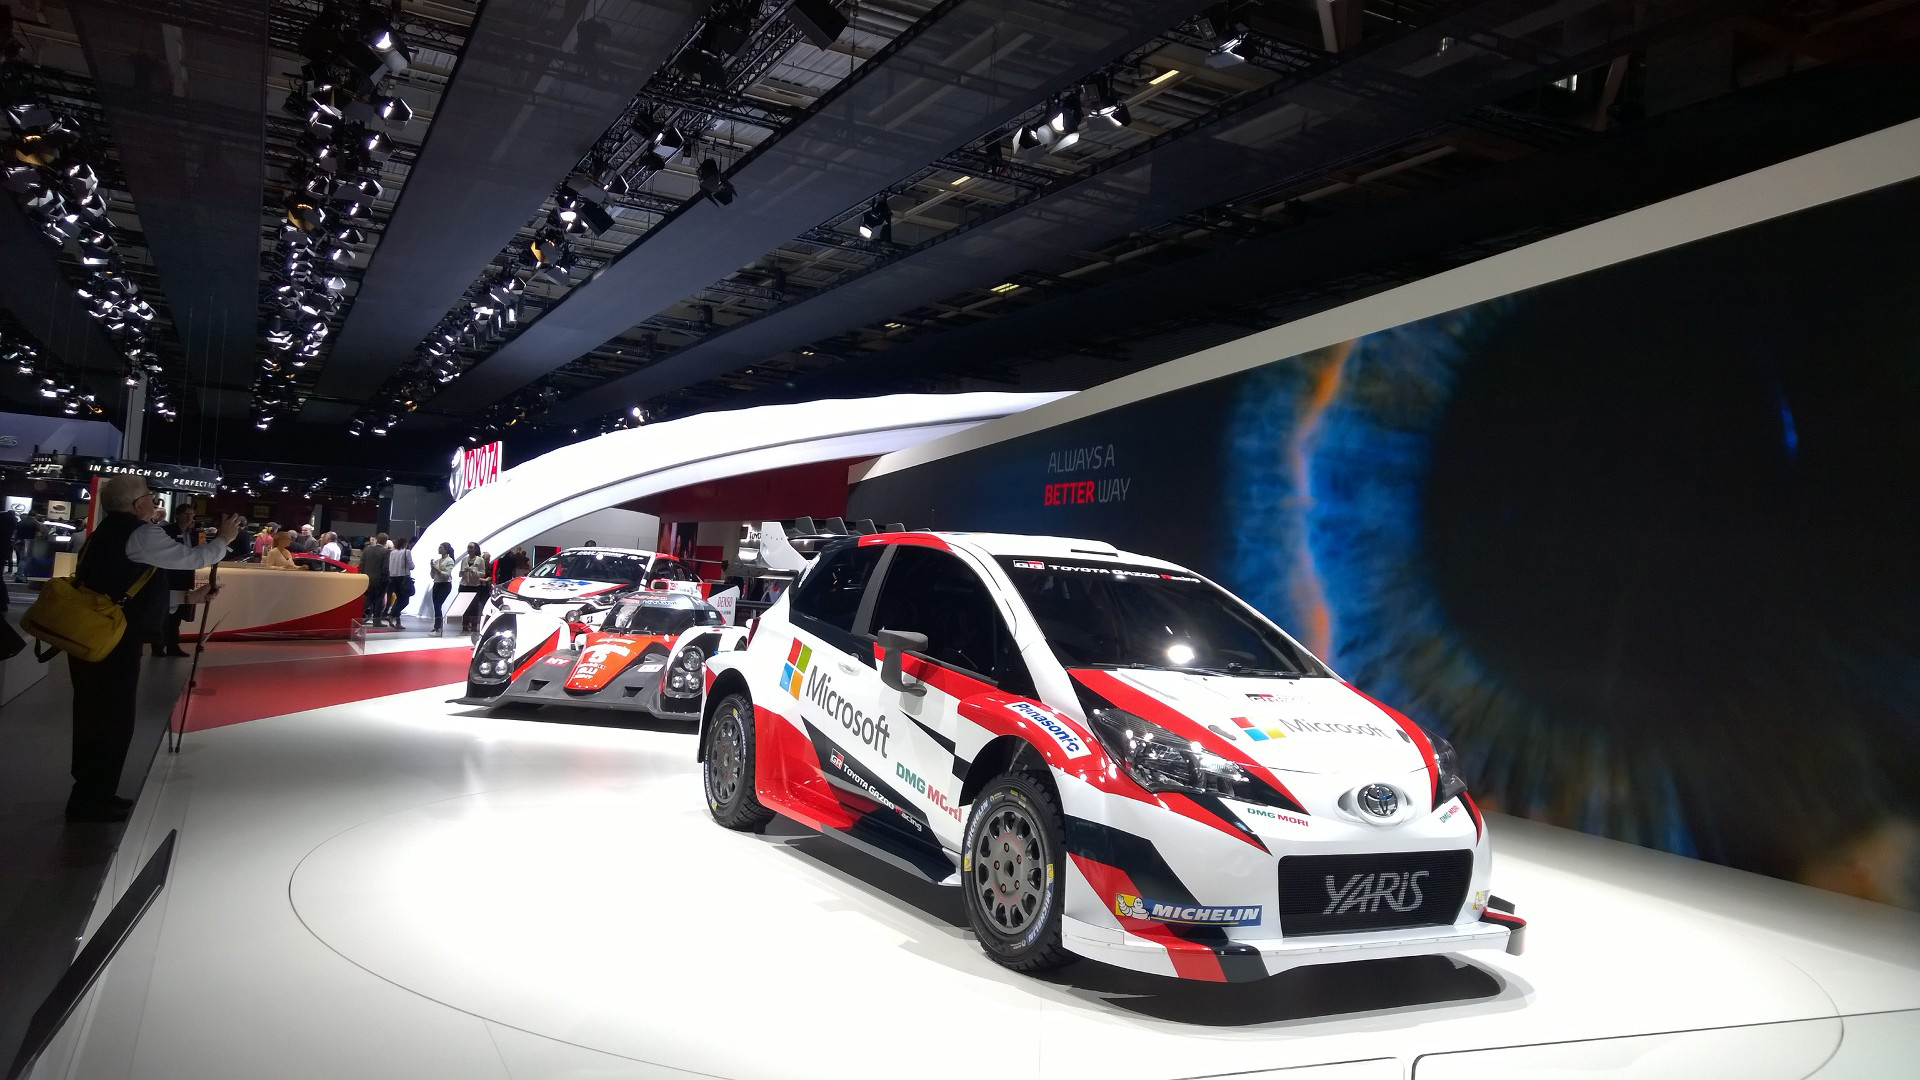 Toyota Yaris WRC - 2016 - Mondial Auto - photo ELJ DM